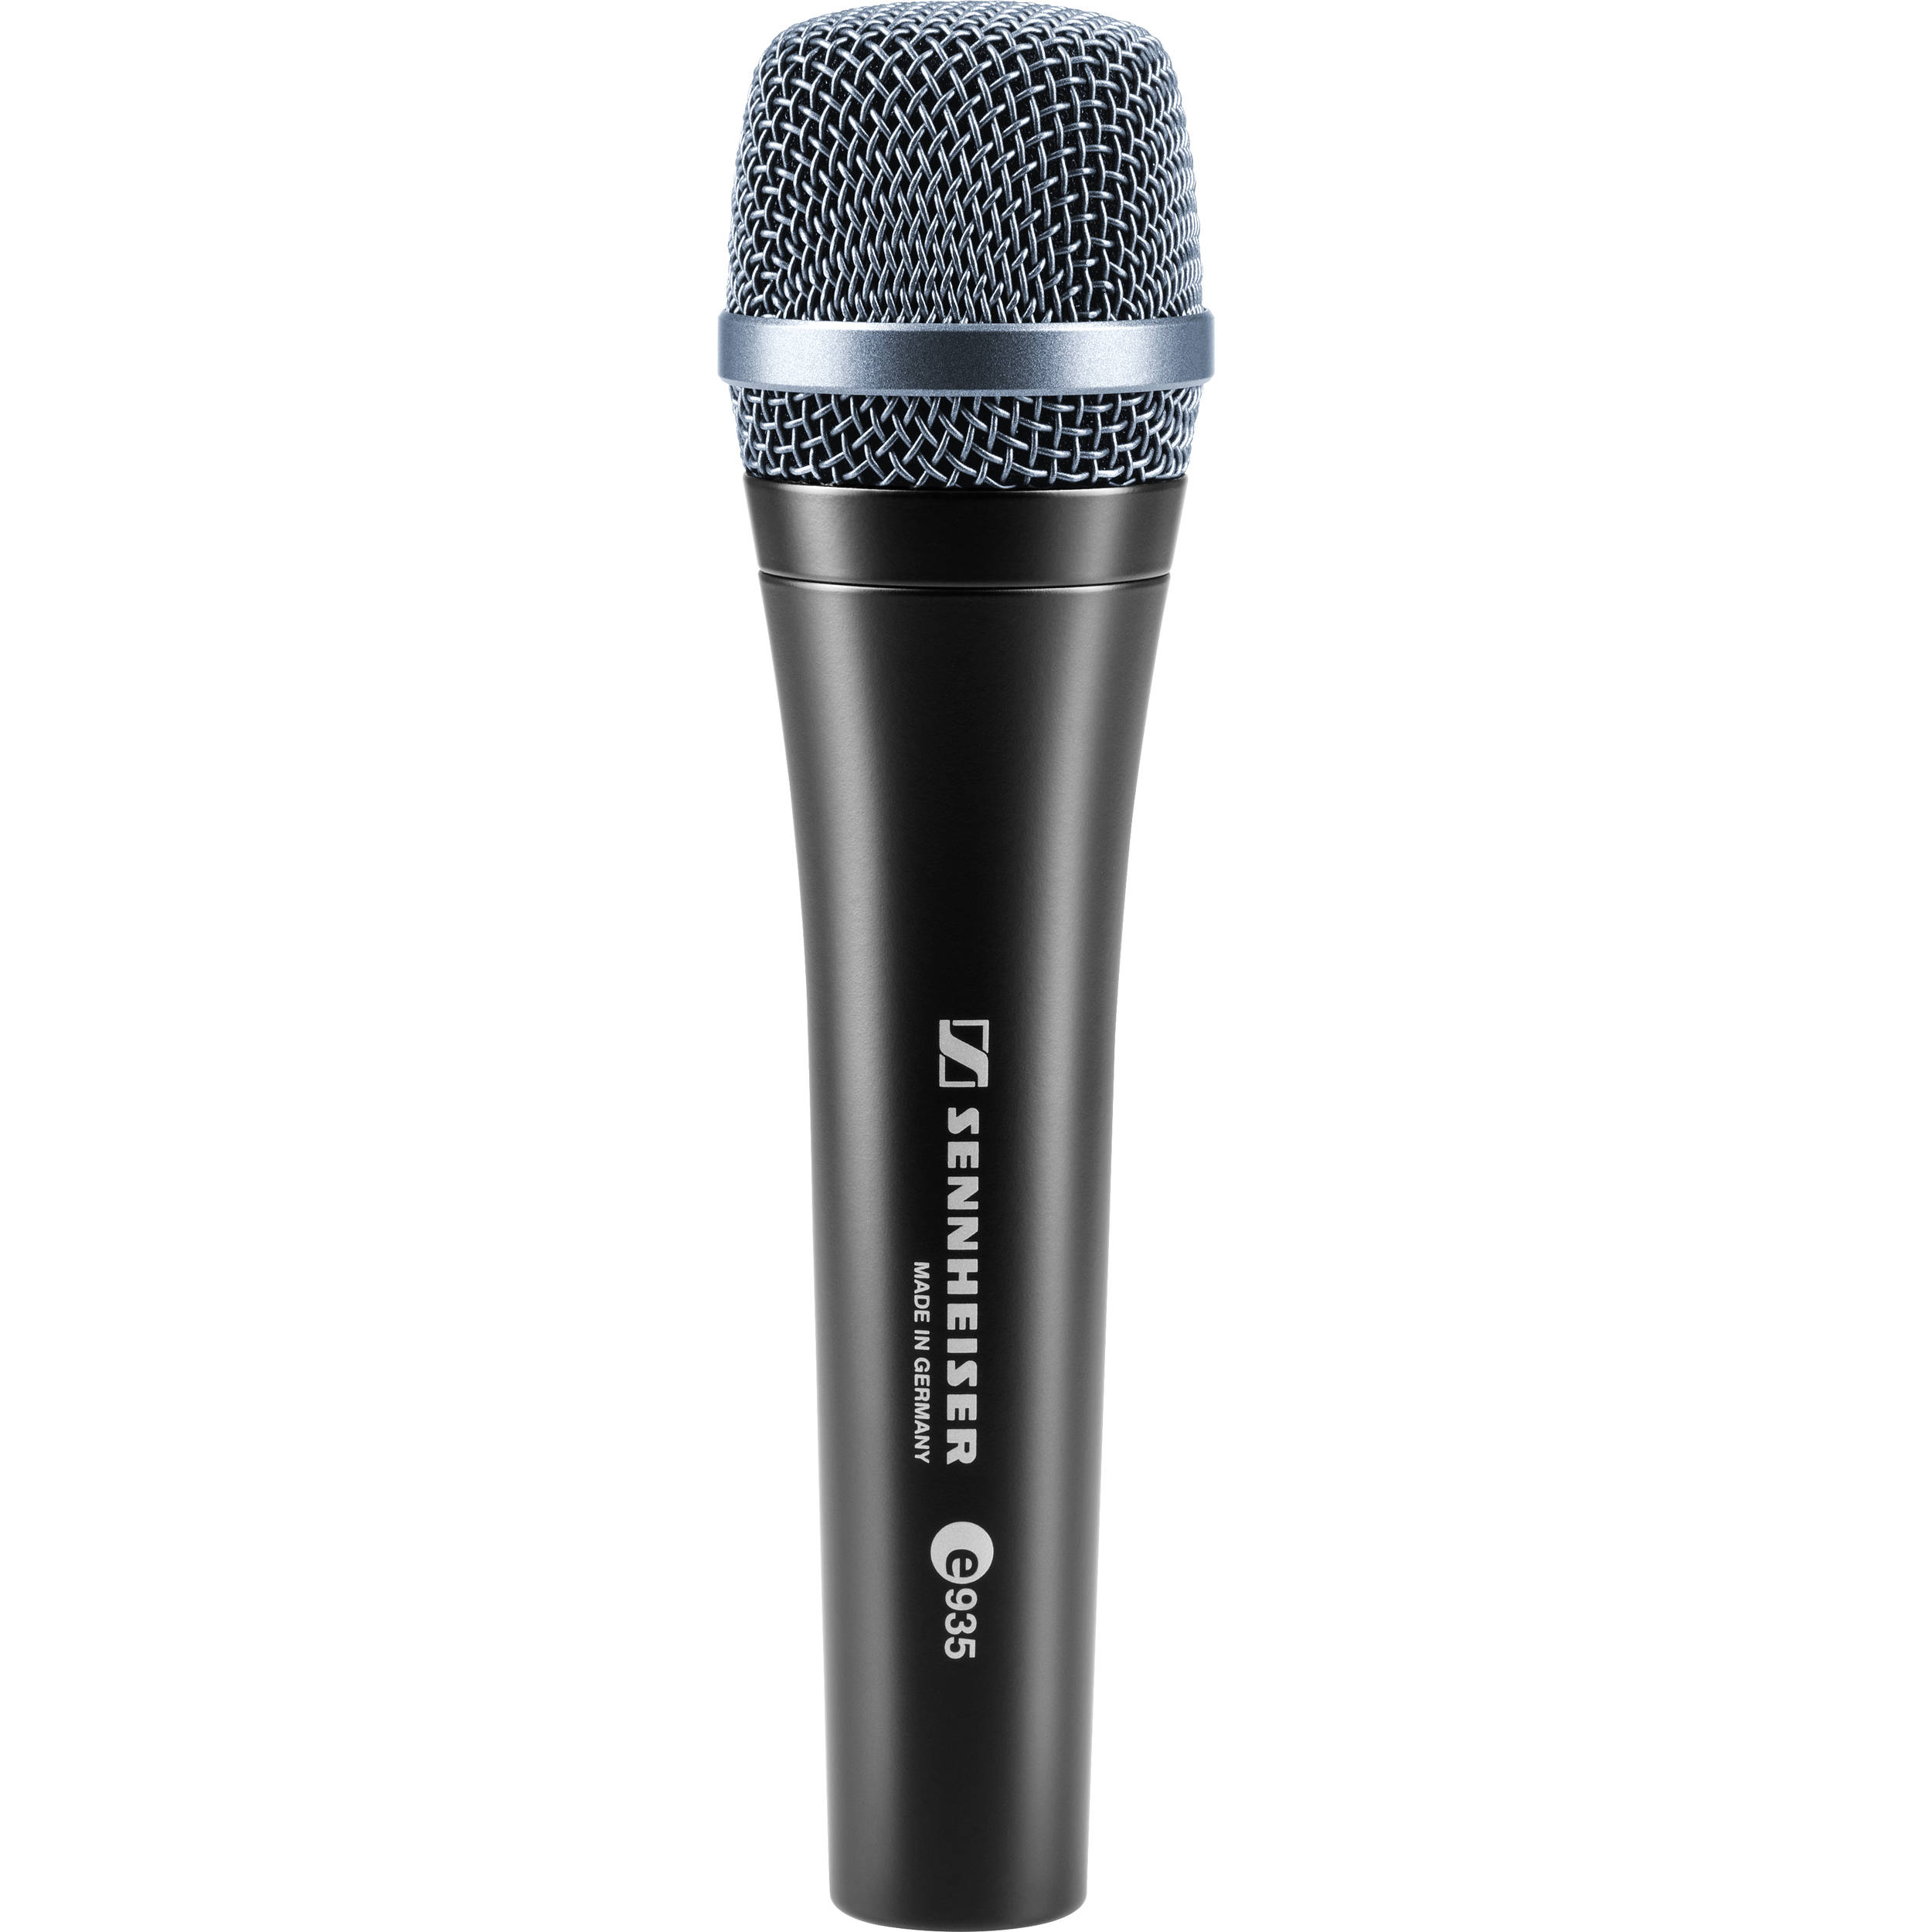 sennheiser e935 handheld cardioid dynamic microphone 009421 b h. Black Bedroom Furniture Sets. Home Design Ideas